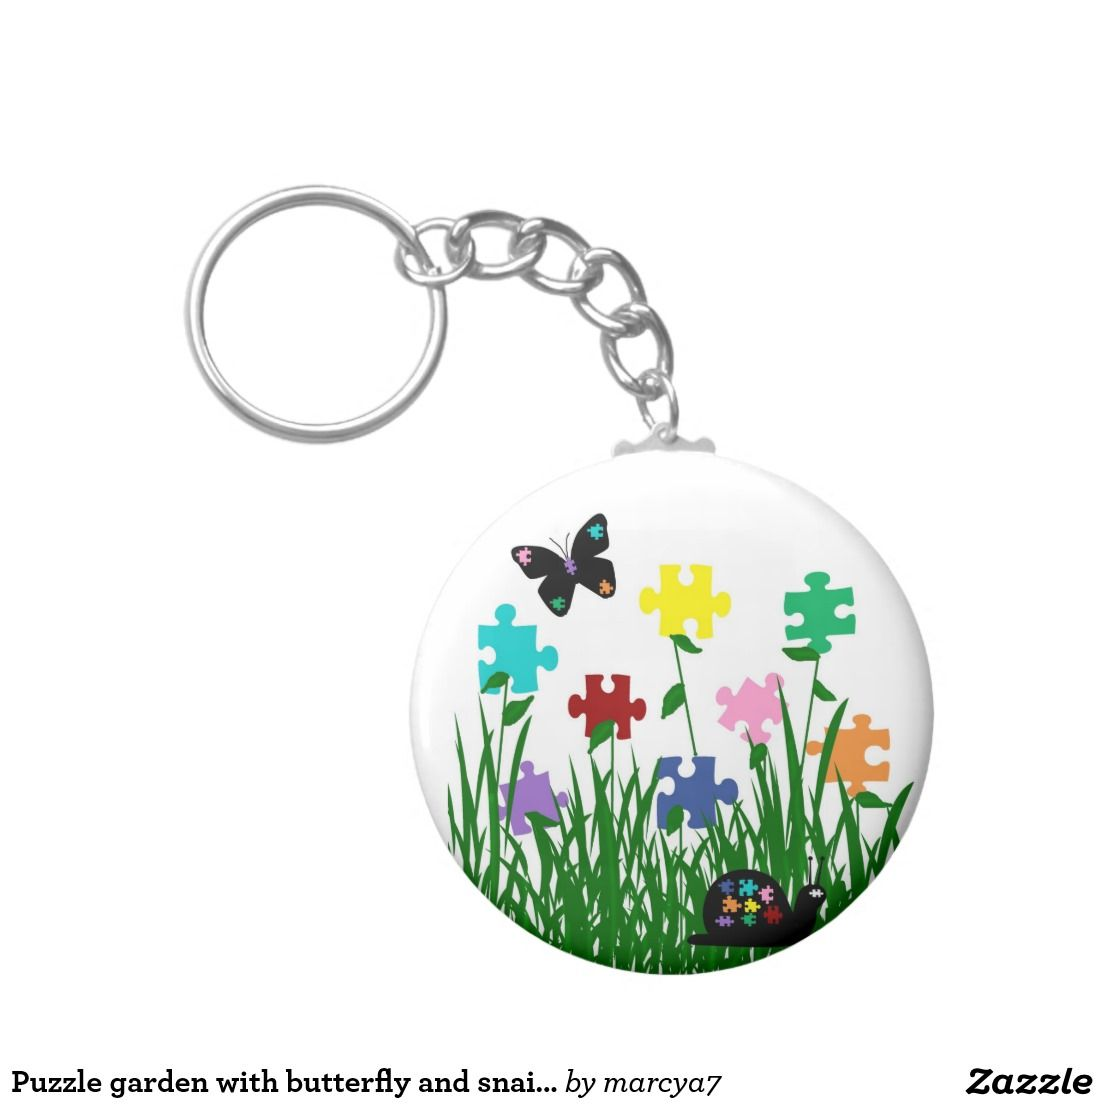 Puzzle garden with butterfly and snail key chain